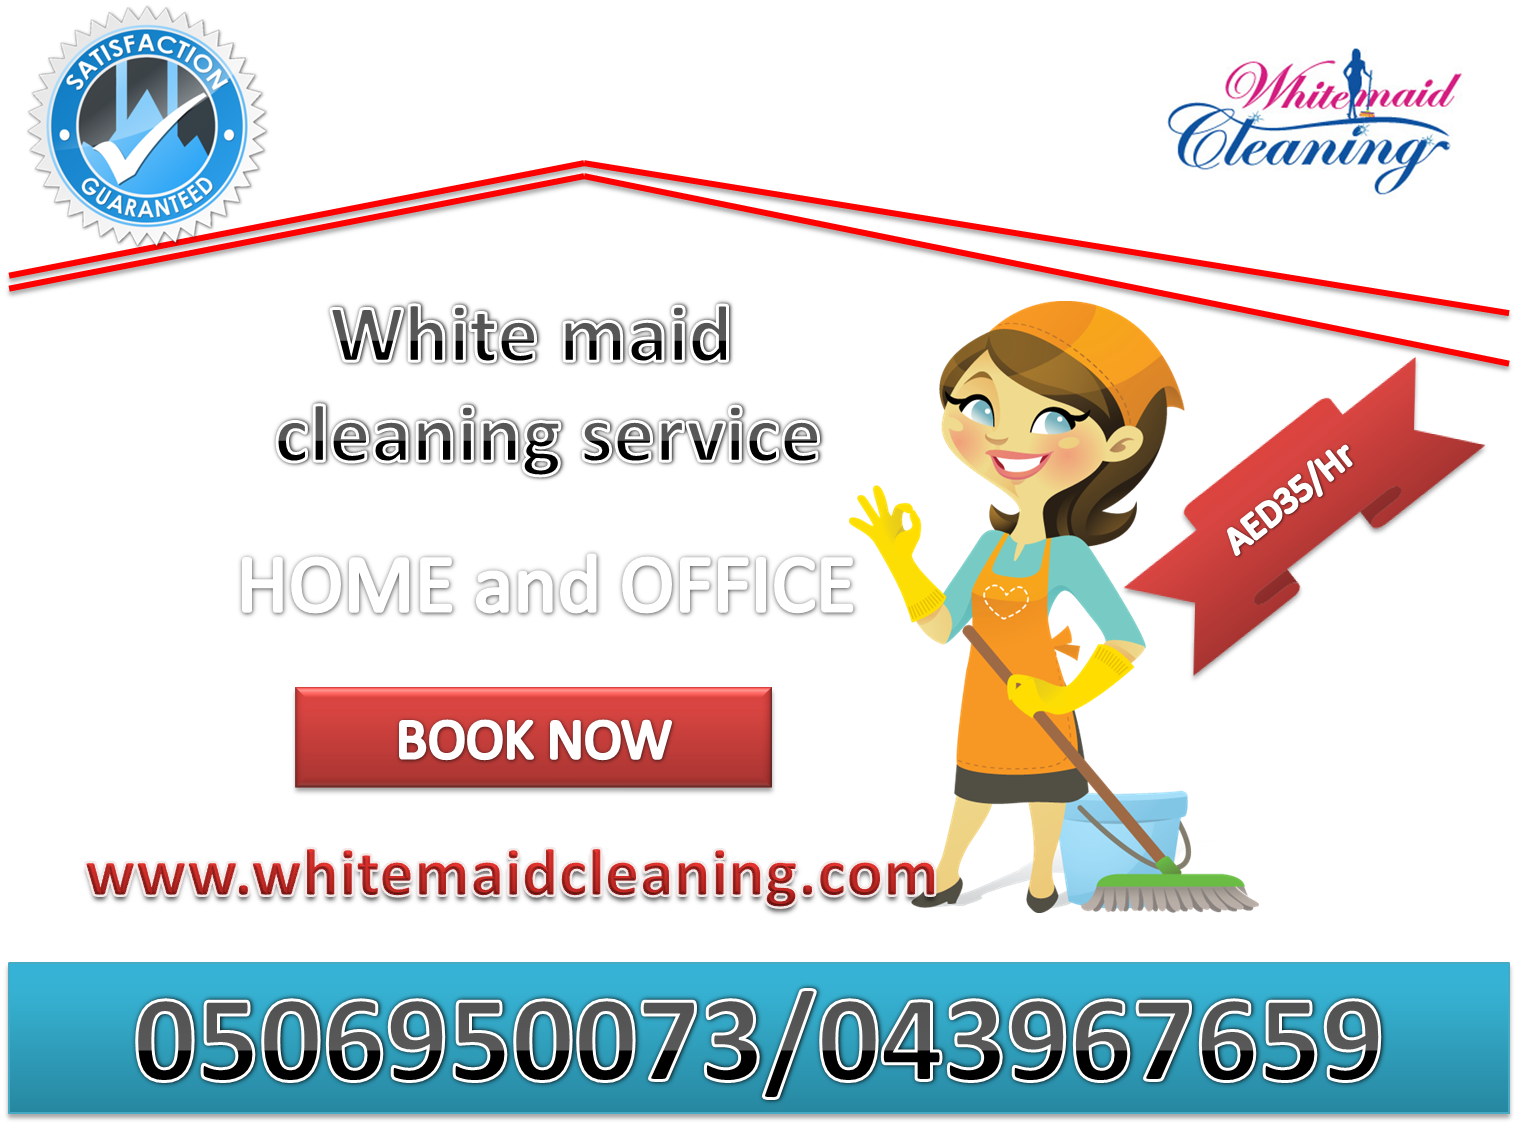 Sparkling clean house clipart jpg black and white library We are professional cleaning company in Dubai providing maid ... jpg black and white library